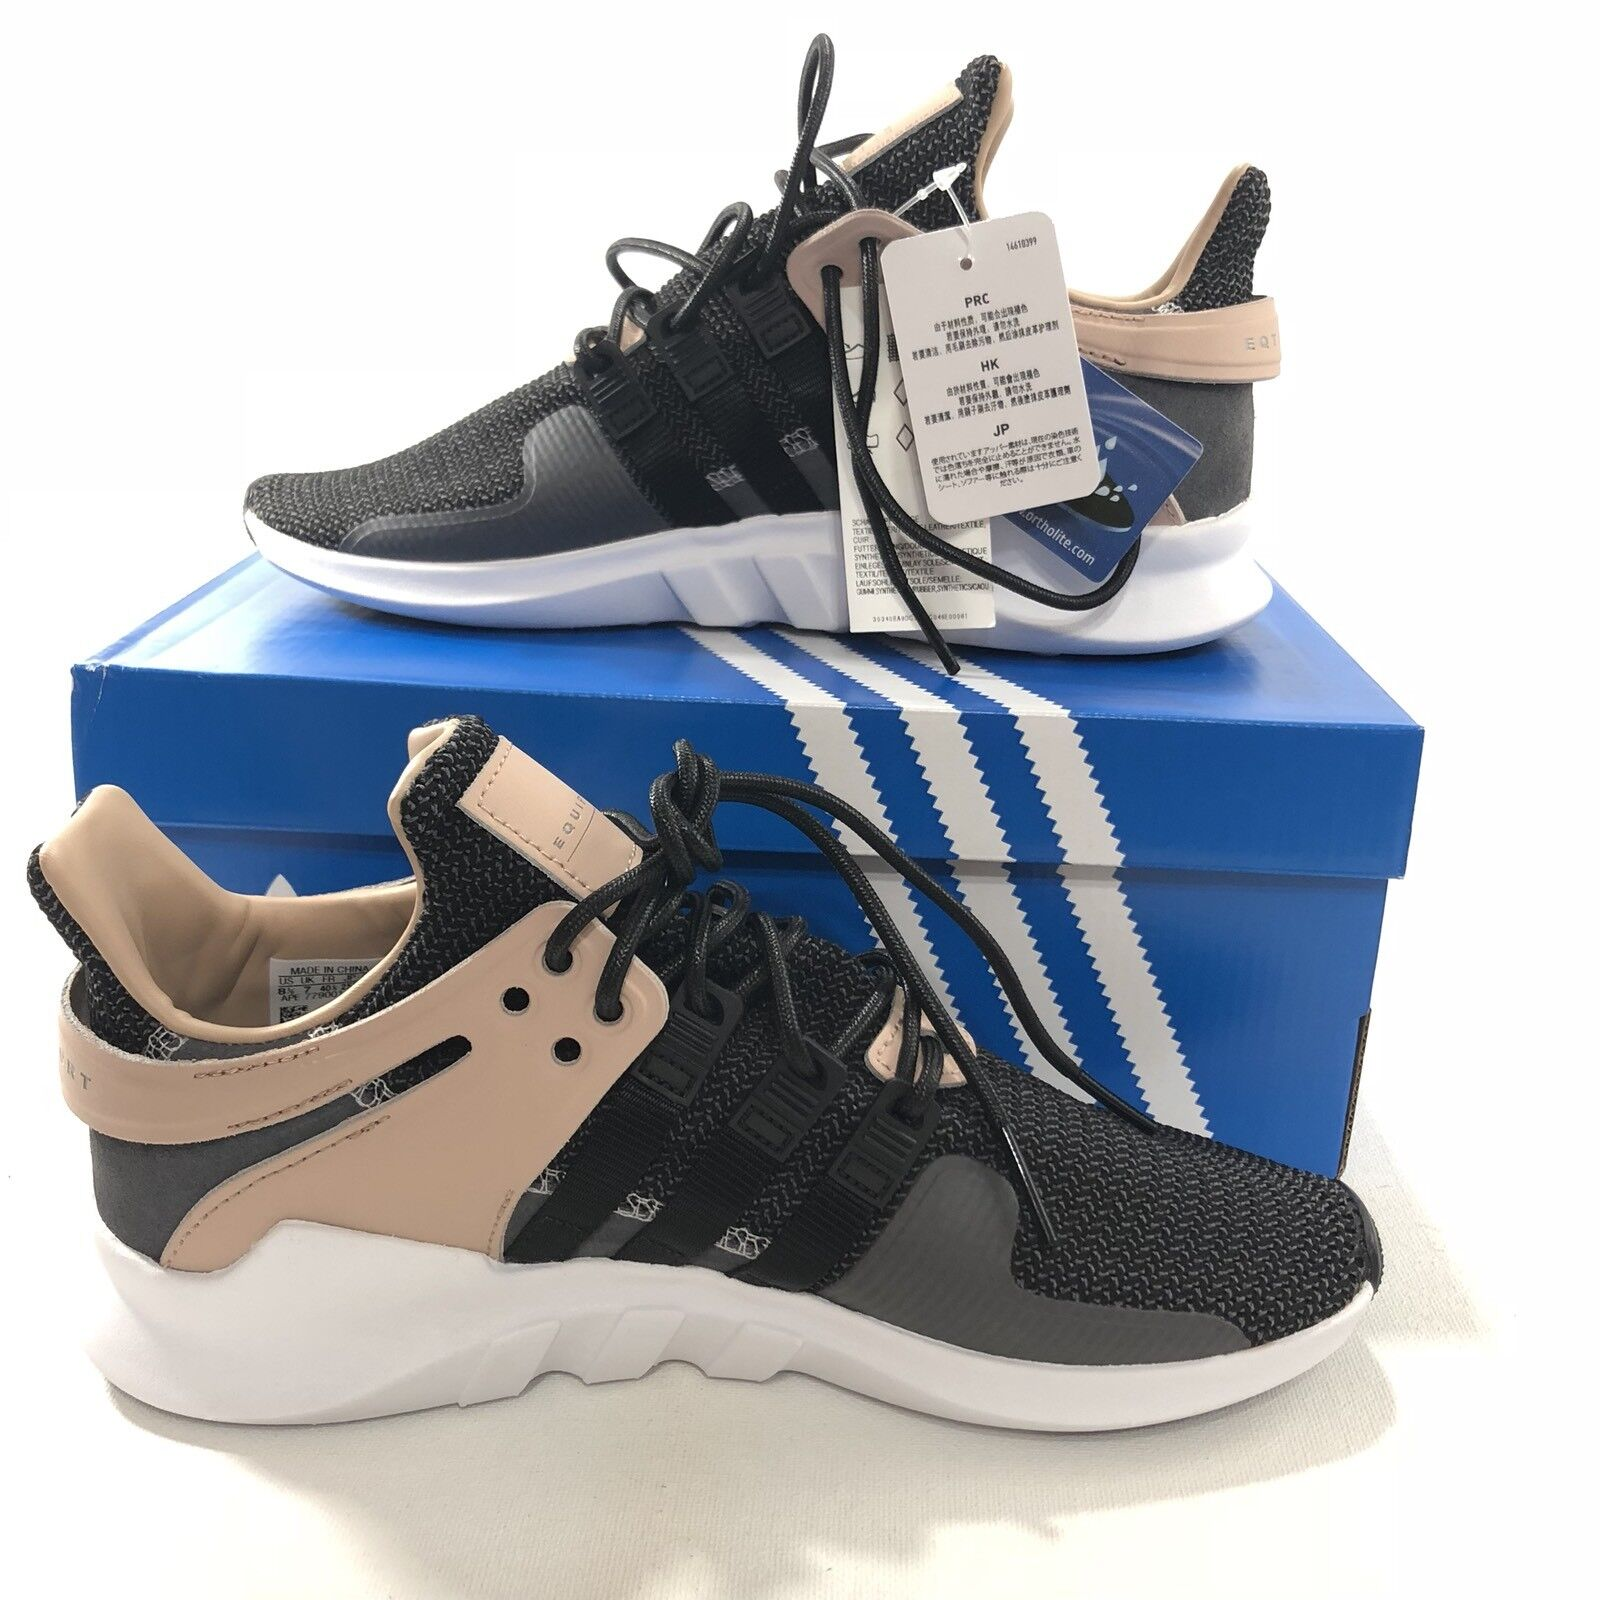 Adidas Womens EQT Support ADV Running Shoes Sneakers CQ2249 Black Size 8